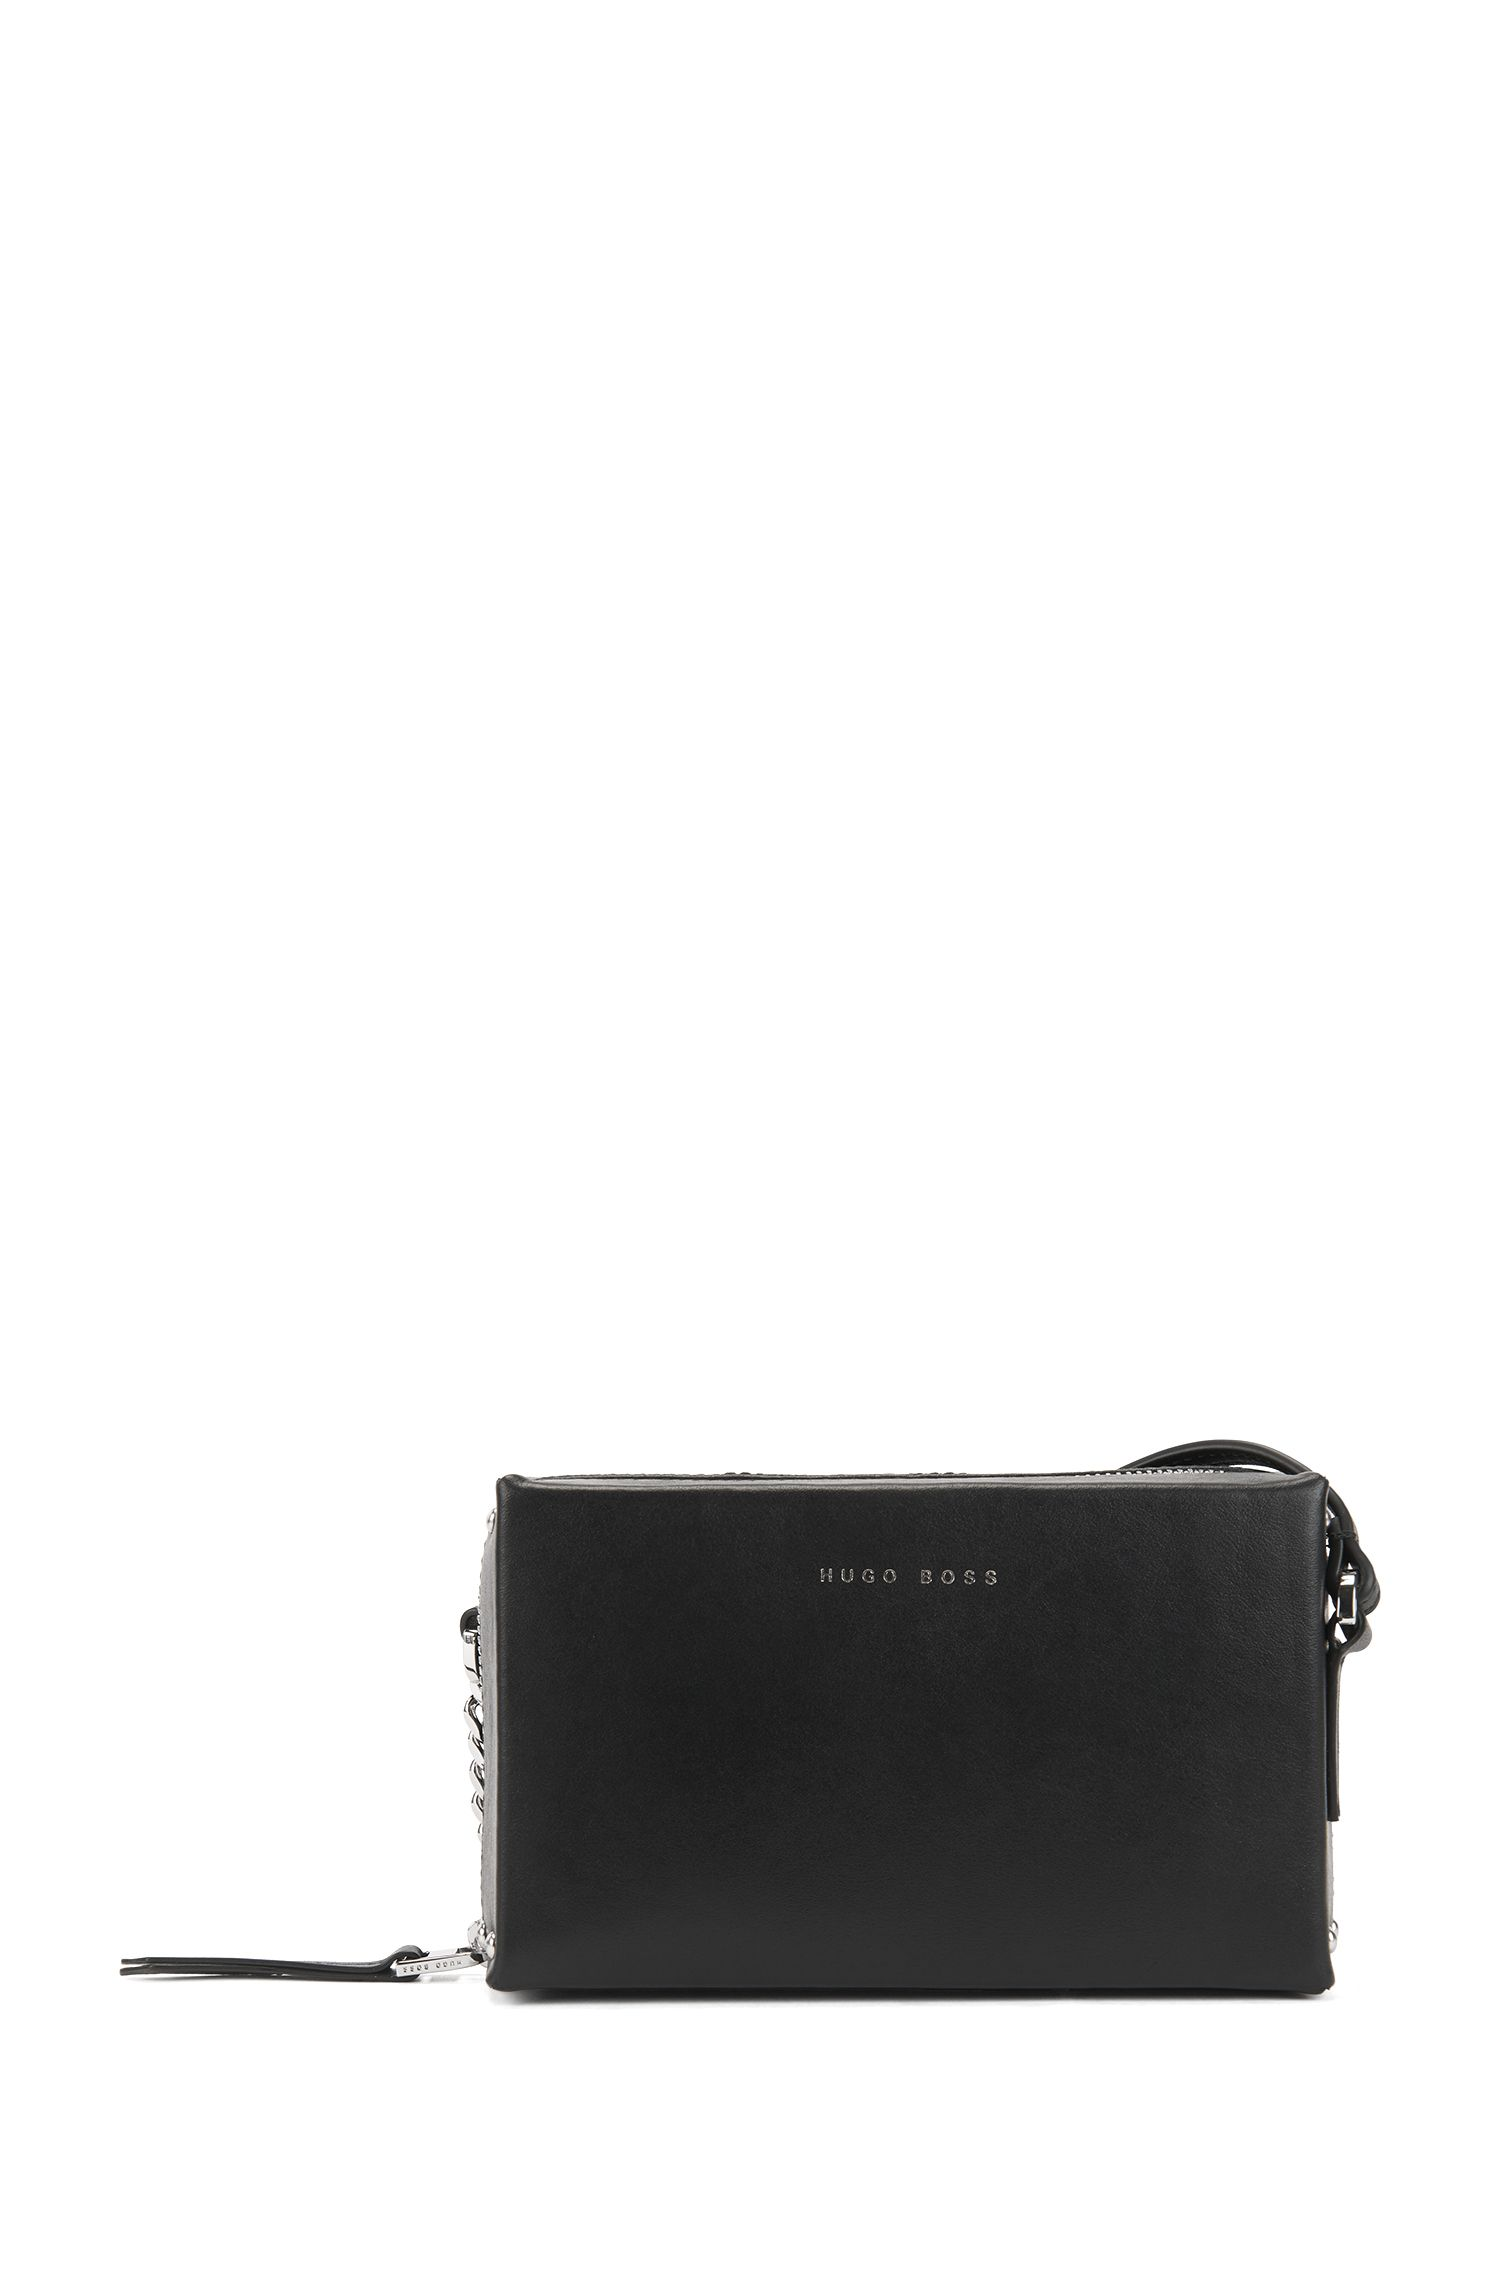 Italian-leather cross-body bag with chain strap, Black